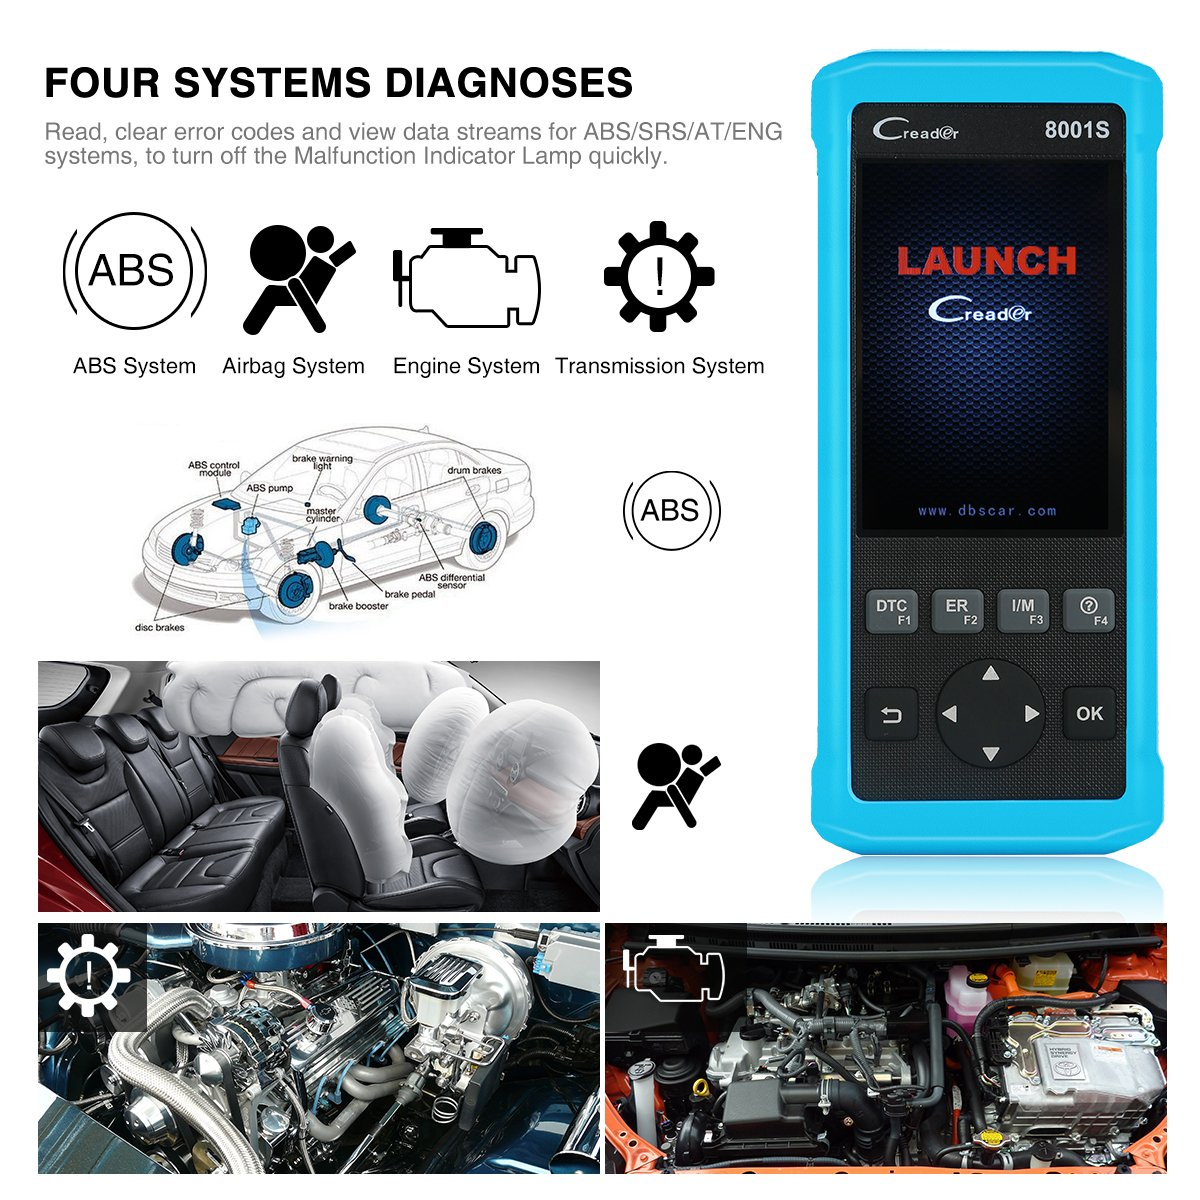 LAUNCH CR8001S Auto Scan Tool Code Reader Diagnostic OBD2 Scanner with ABS, SRS, Engine and Transmission Diagnoses and Oil Light Reset, EPB, SAS, BMS Reset by LAUNCH (Image #3)